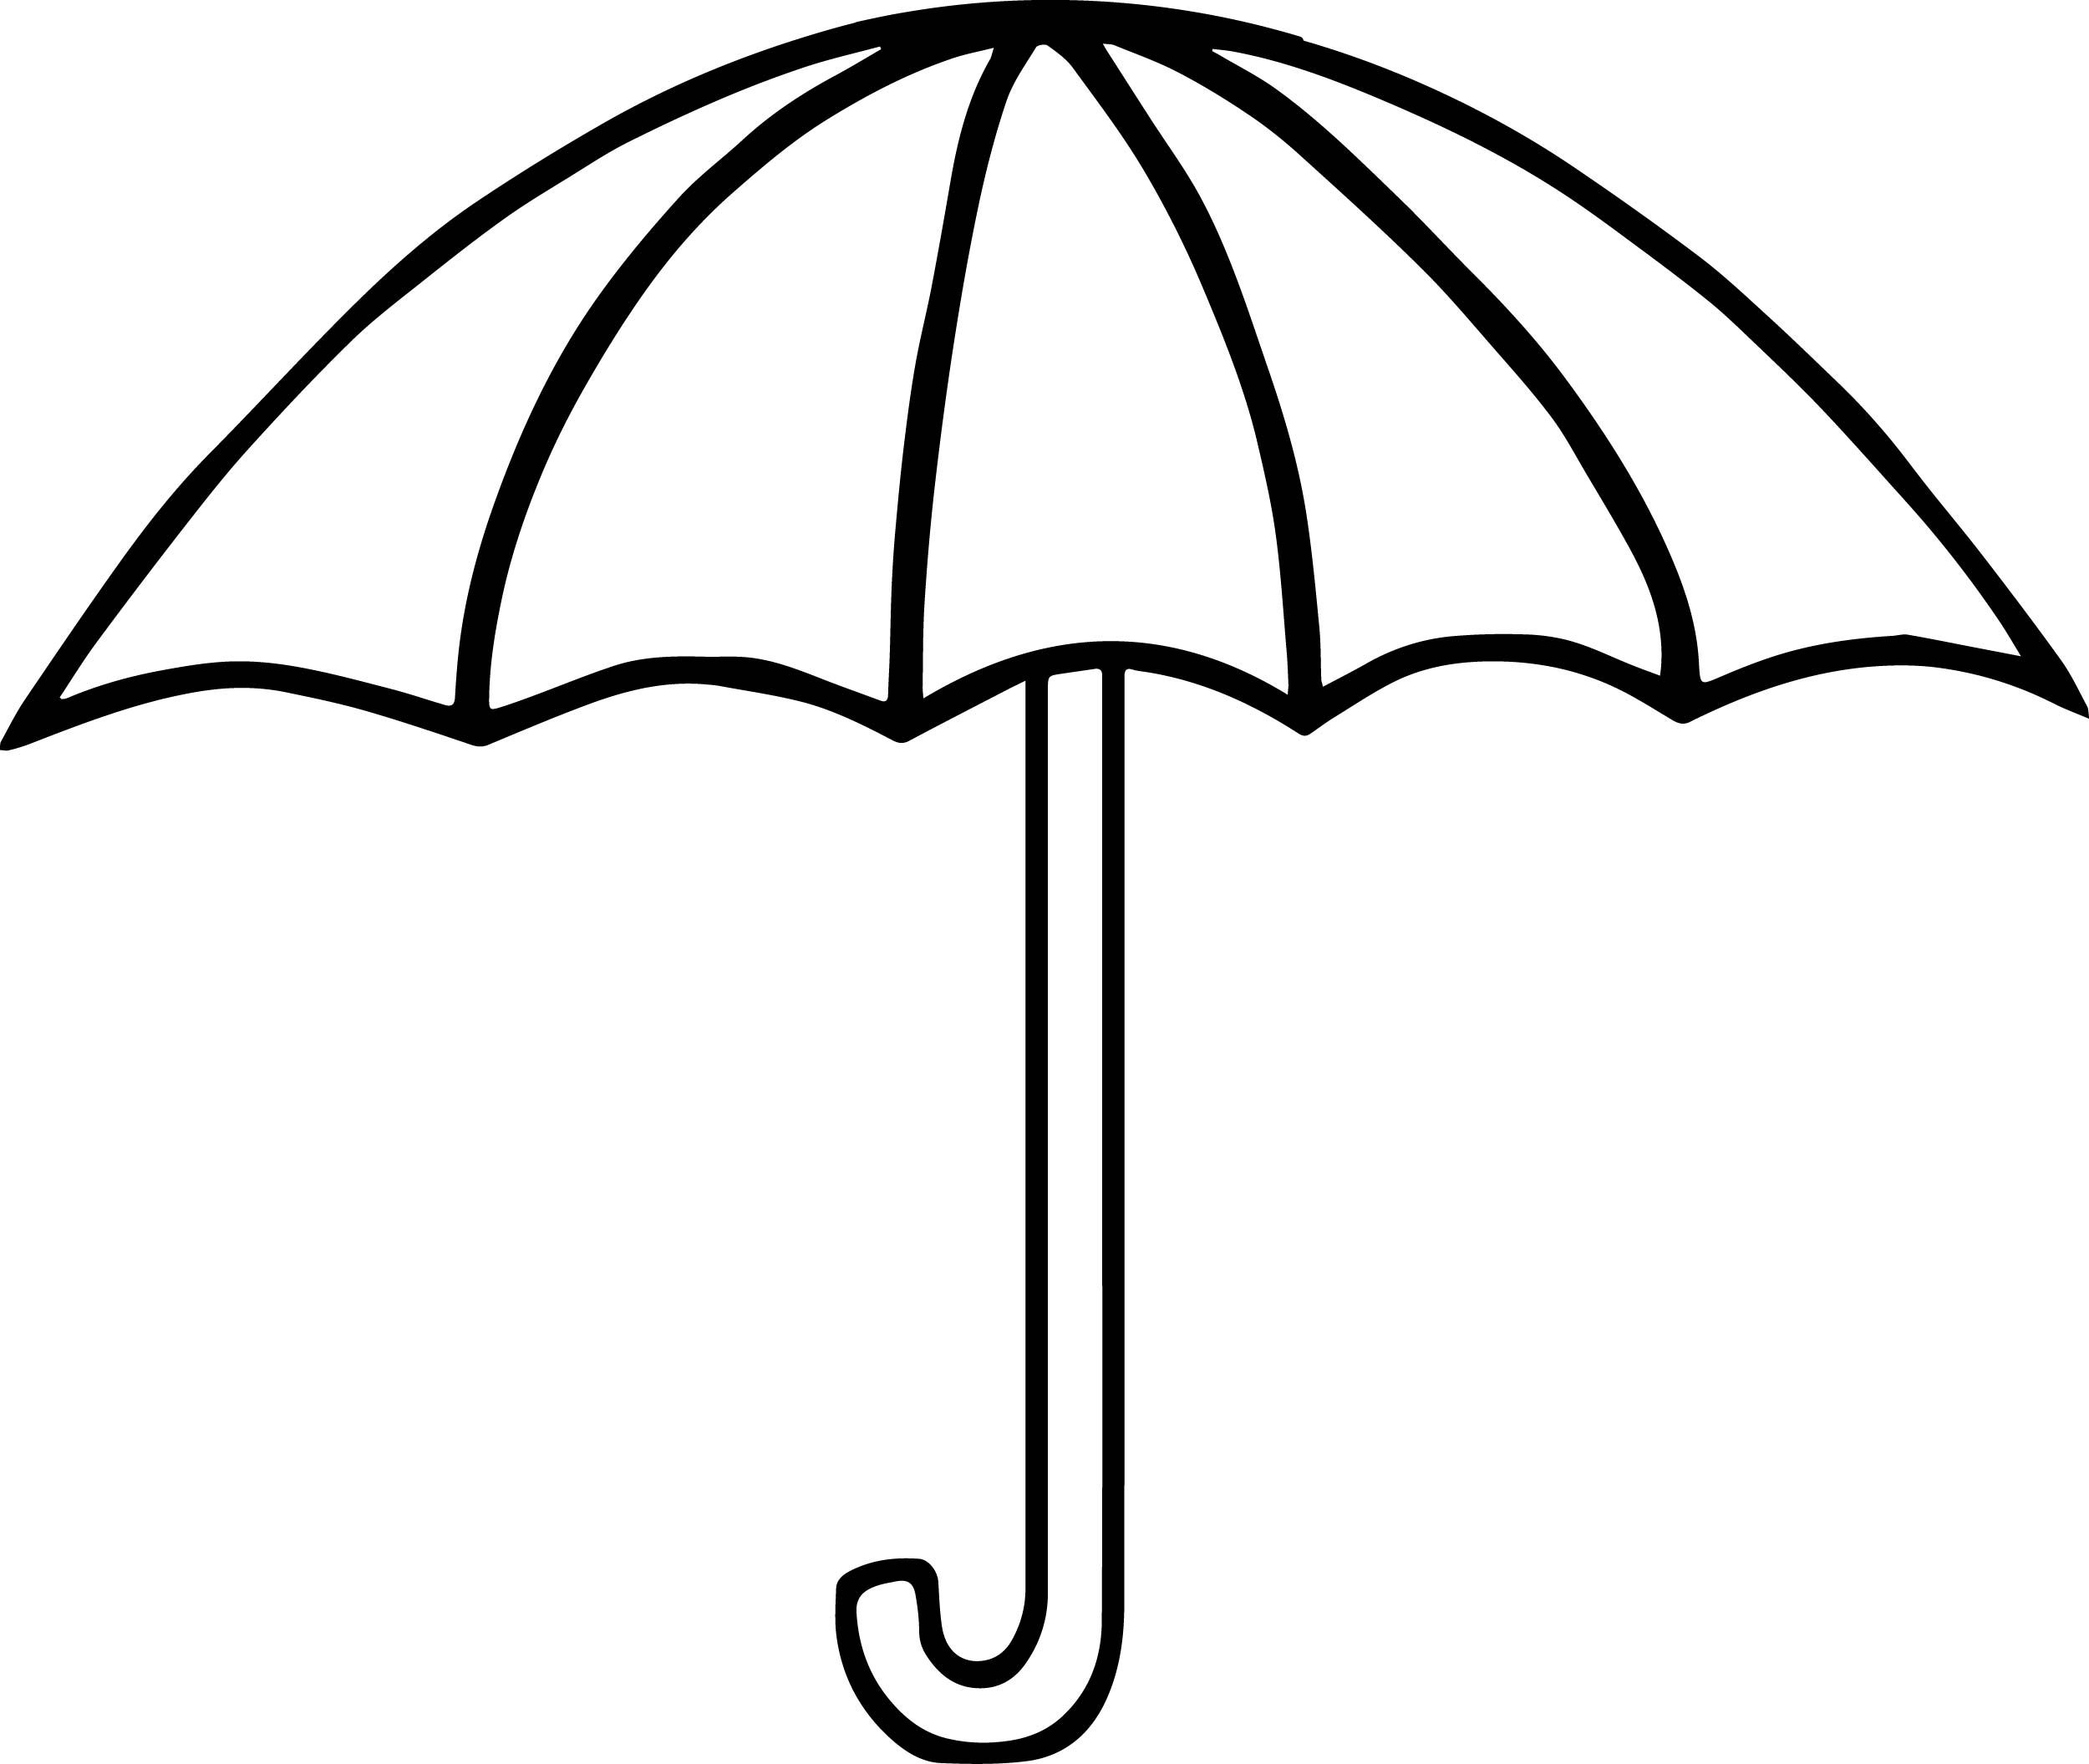 Summer Umbrella Coloring Page Wecoloringpage And Umbrella Coloring Page Picture Of Umbrella Umbrella Drawing